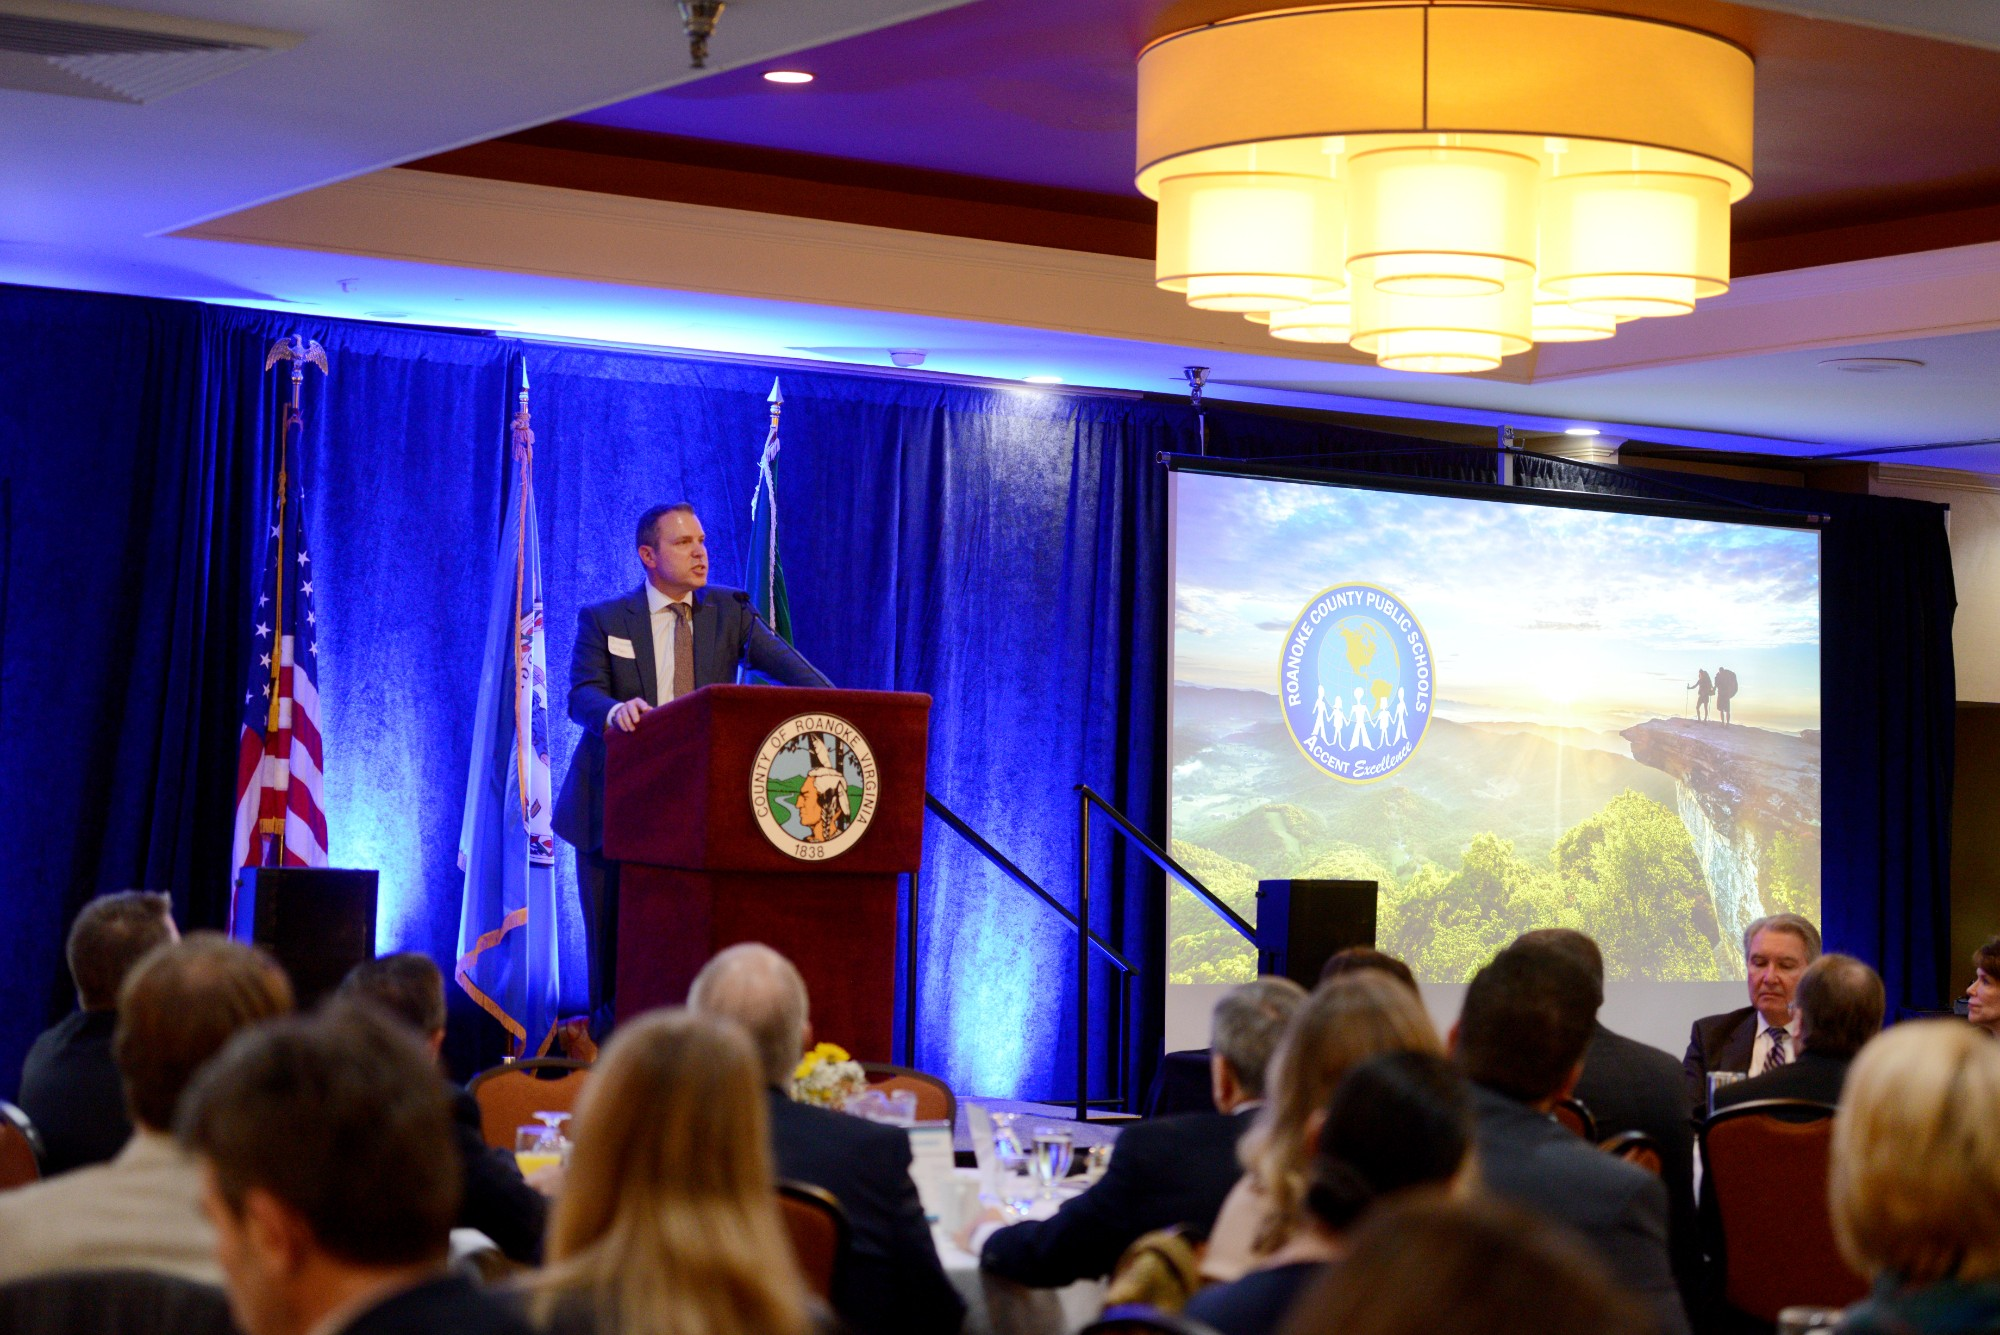 State of the County 61